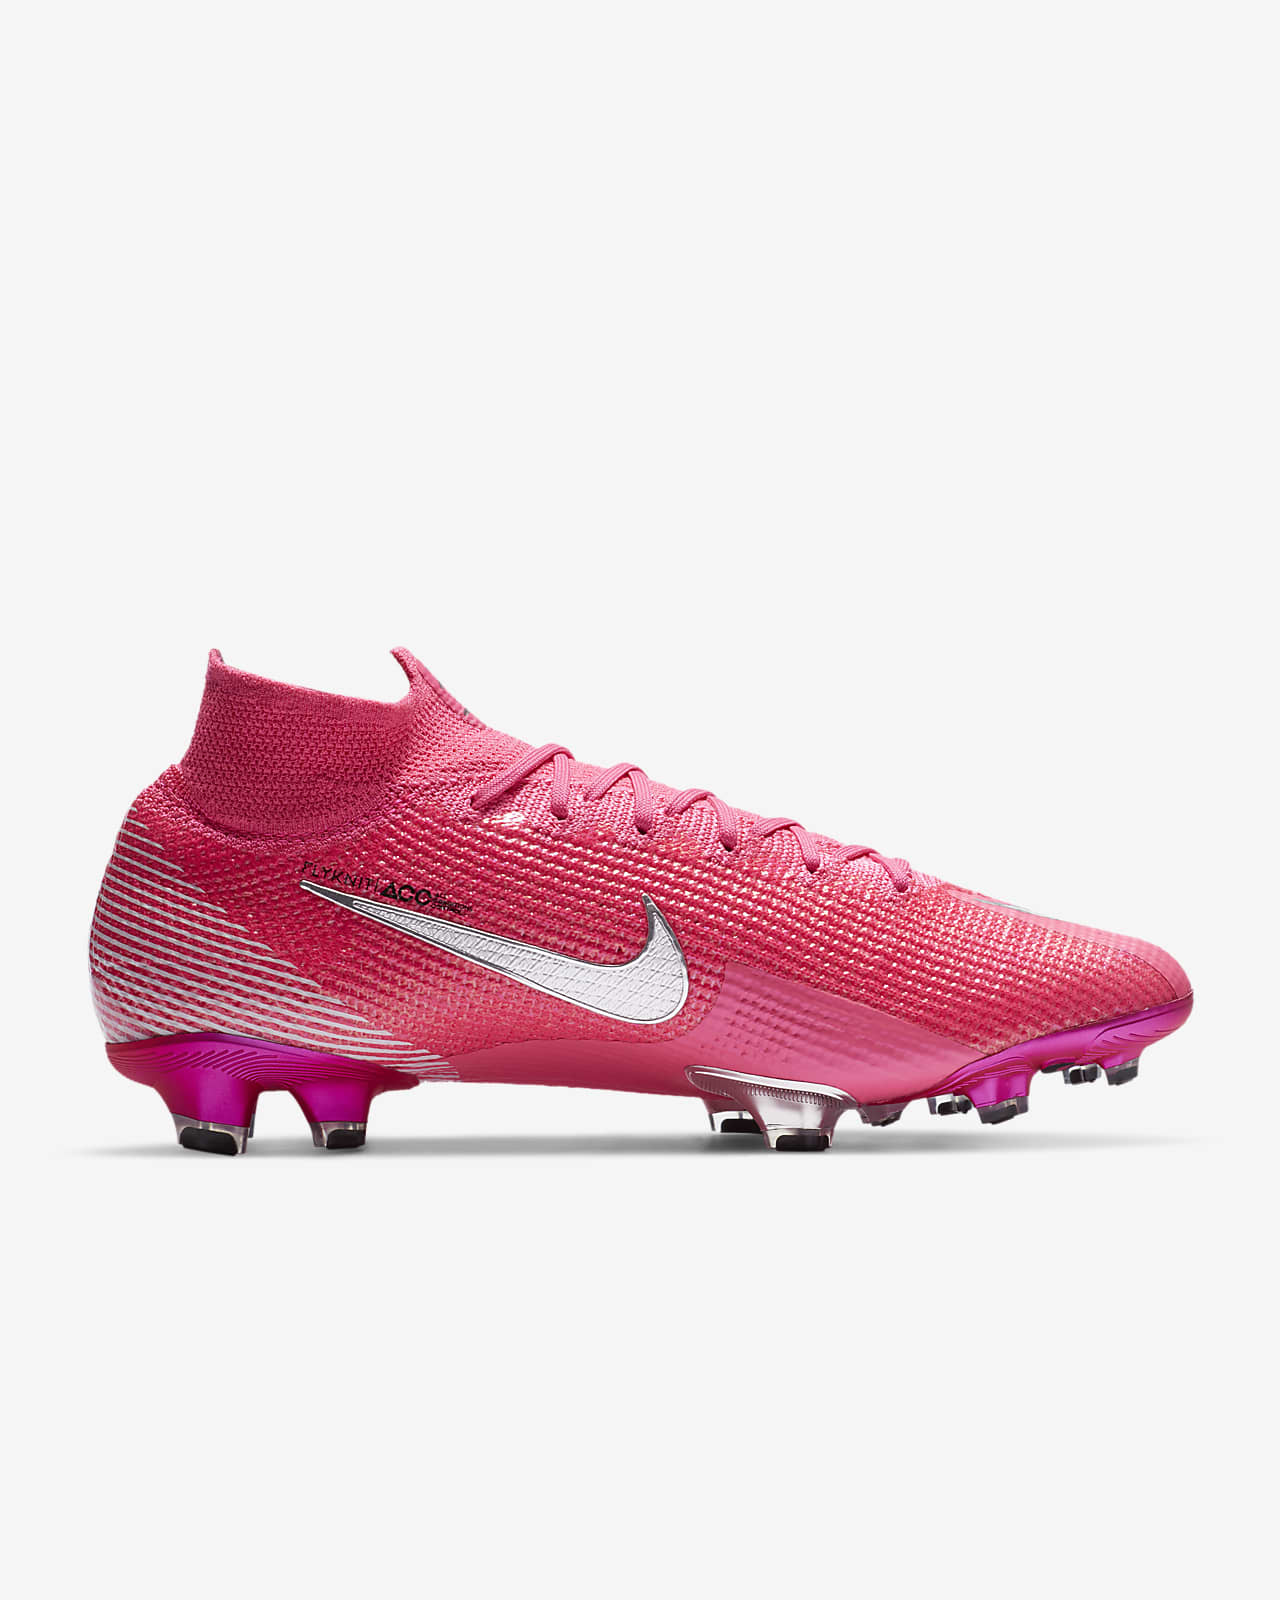 Nike Mercurial Superfly 7 Elite Mbappé Rosa FG Firm-Ground Football Boot